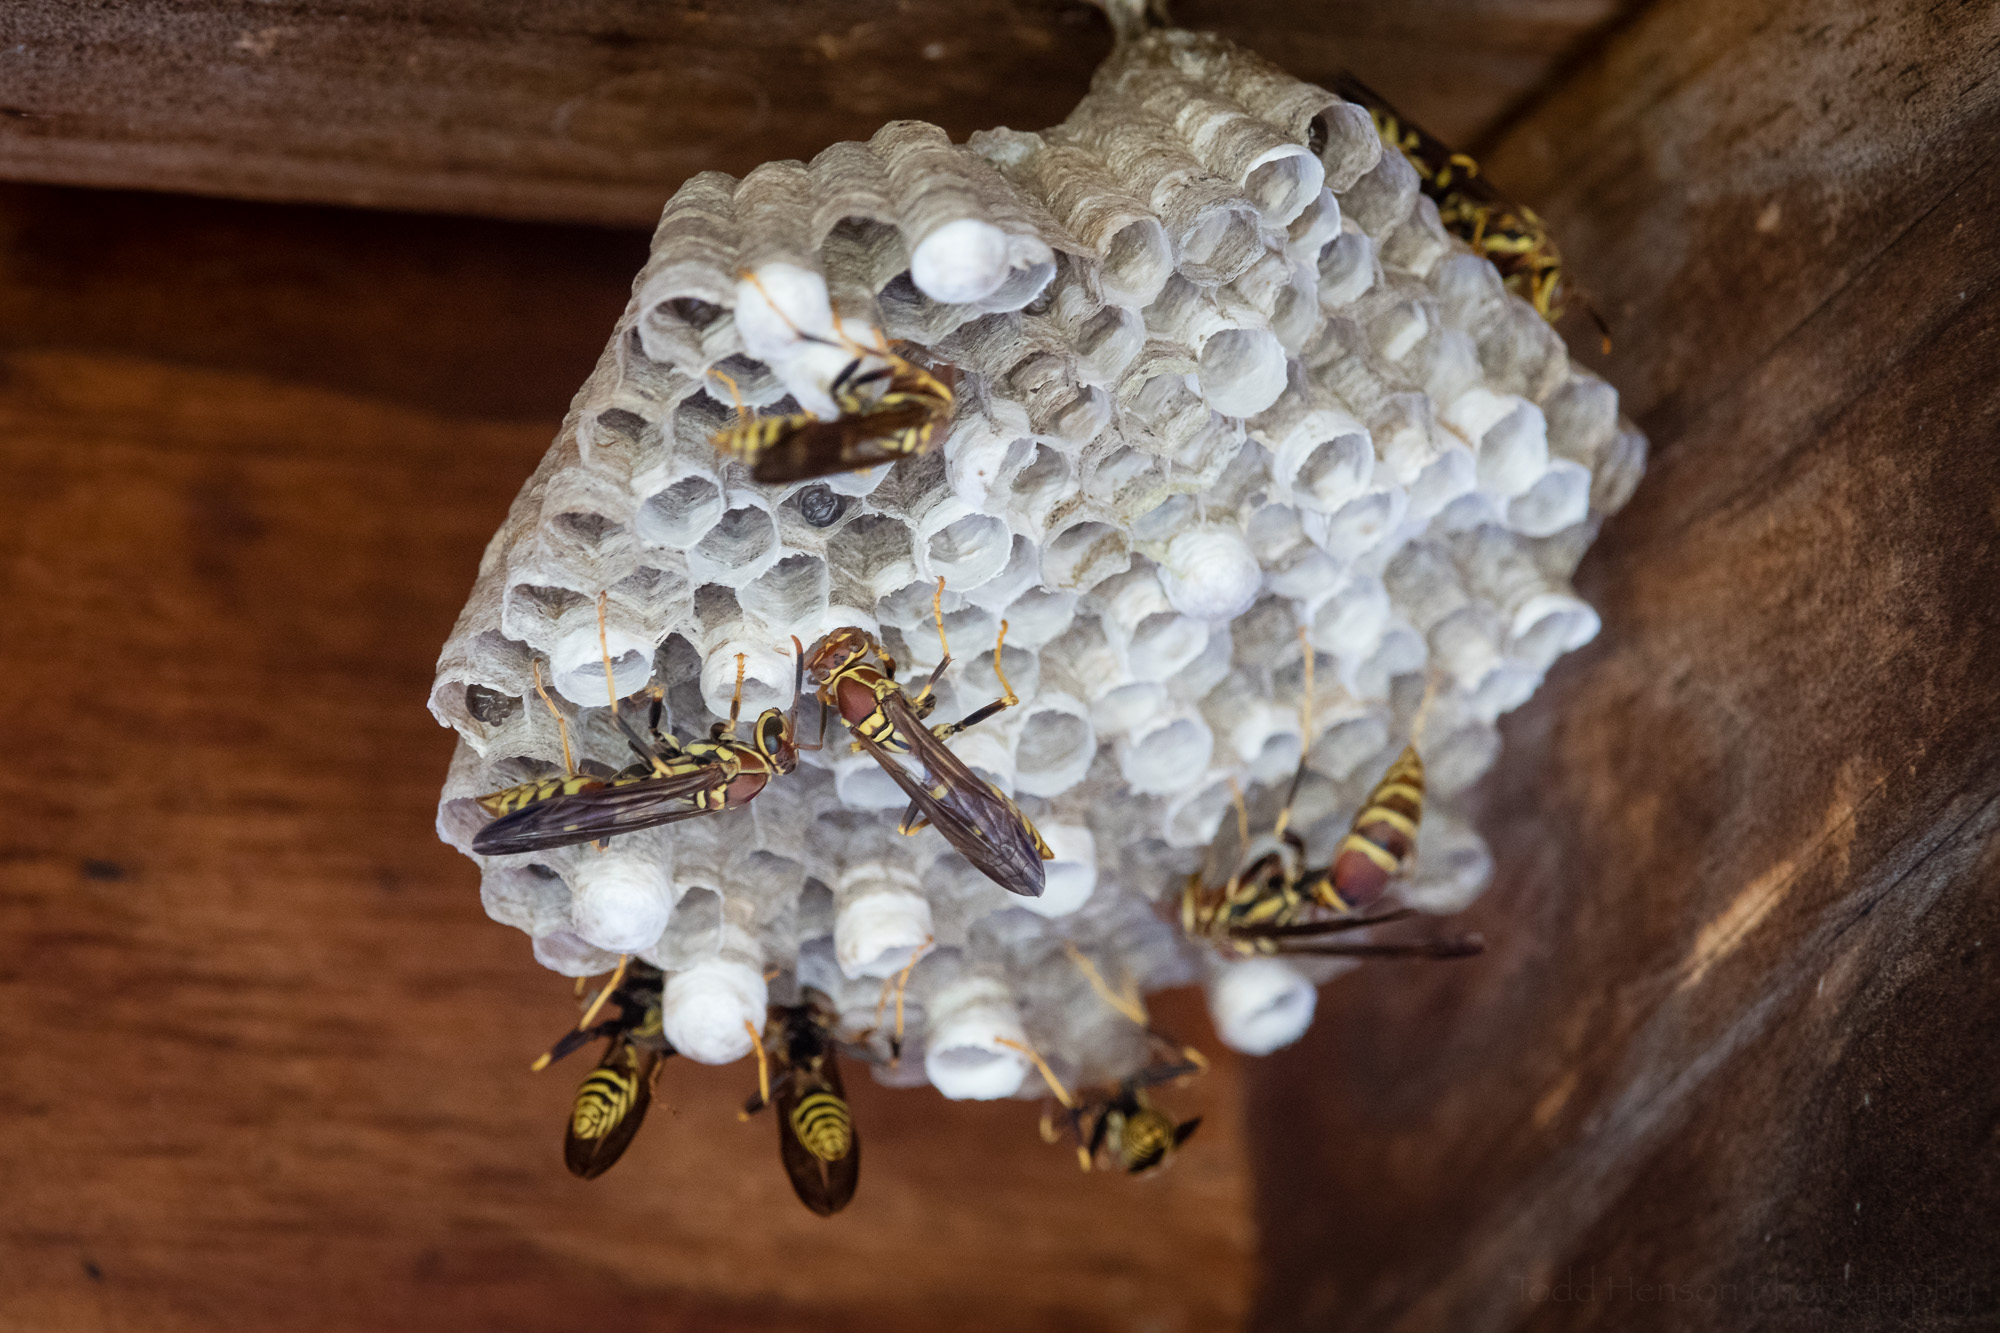 A paper wasp nest with several workers.